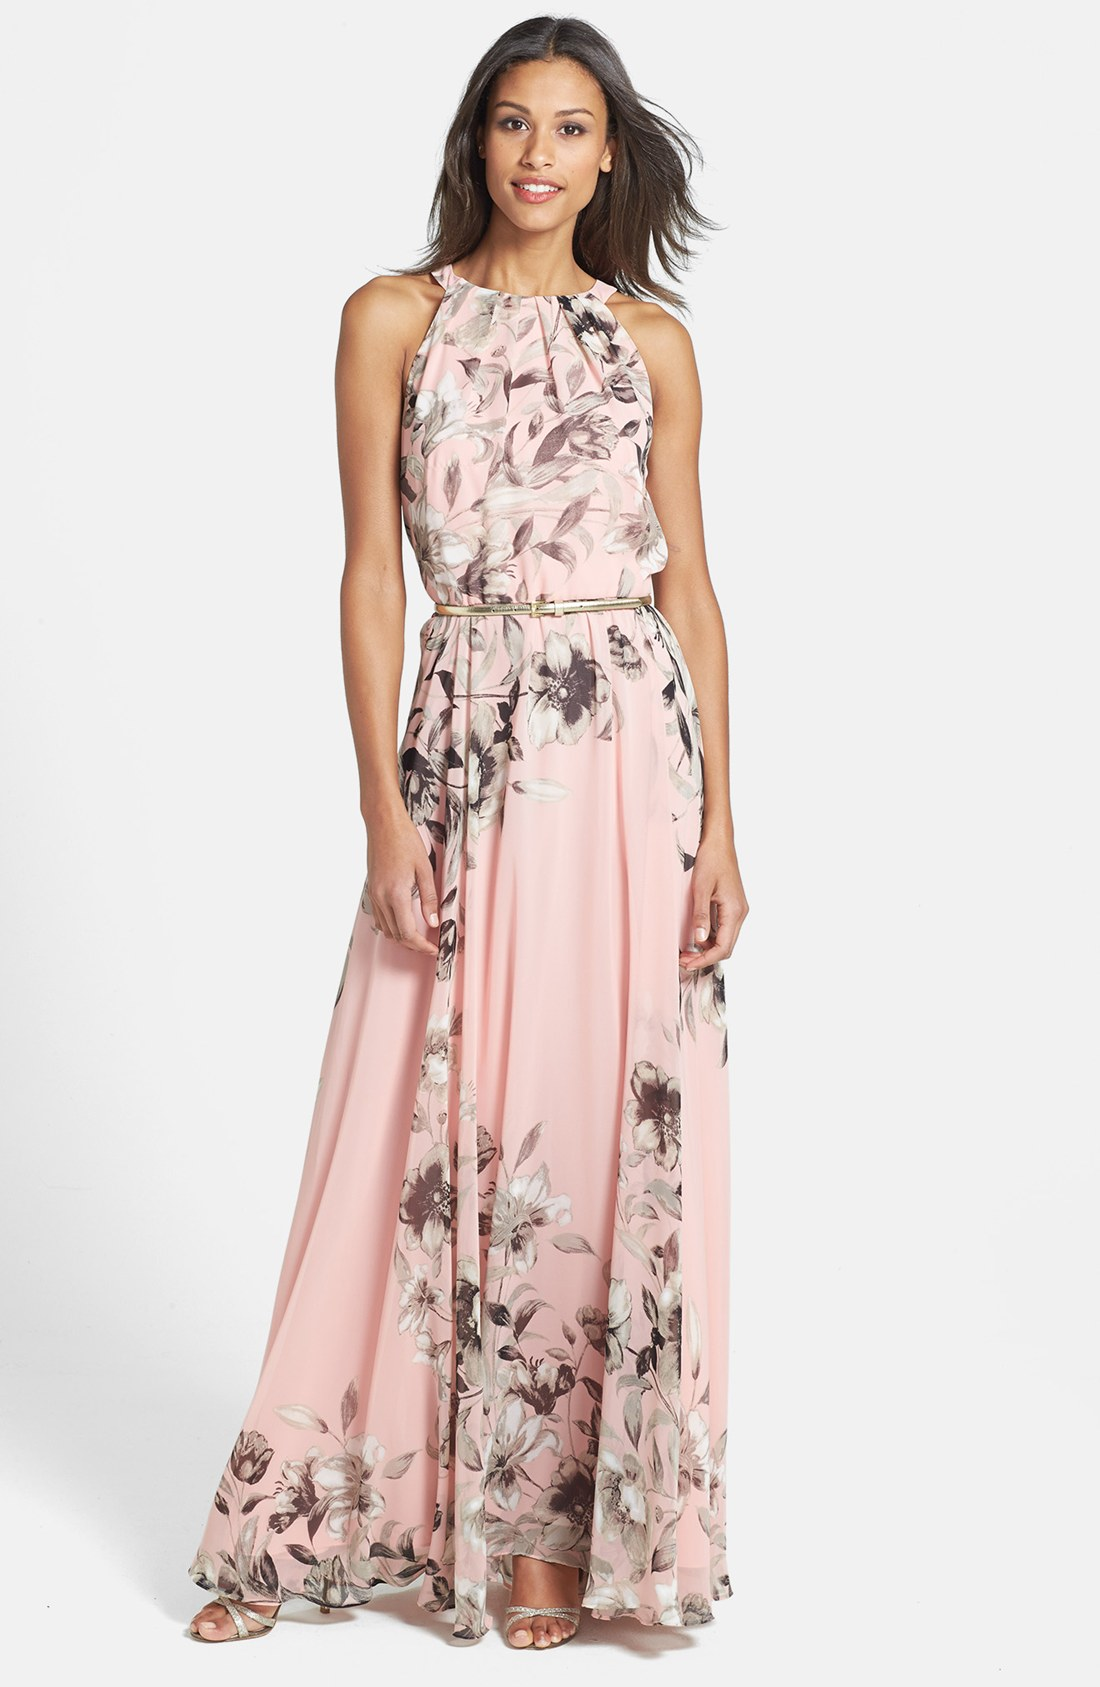 a2090356dcd Details about Eliza J Belted Chiffon Maxi Dress Sz 14 - Belt in not included